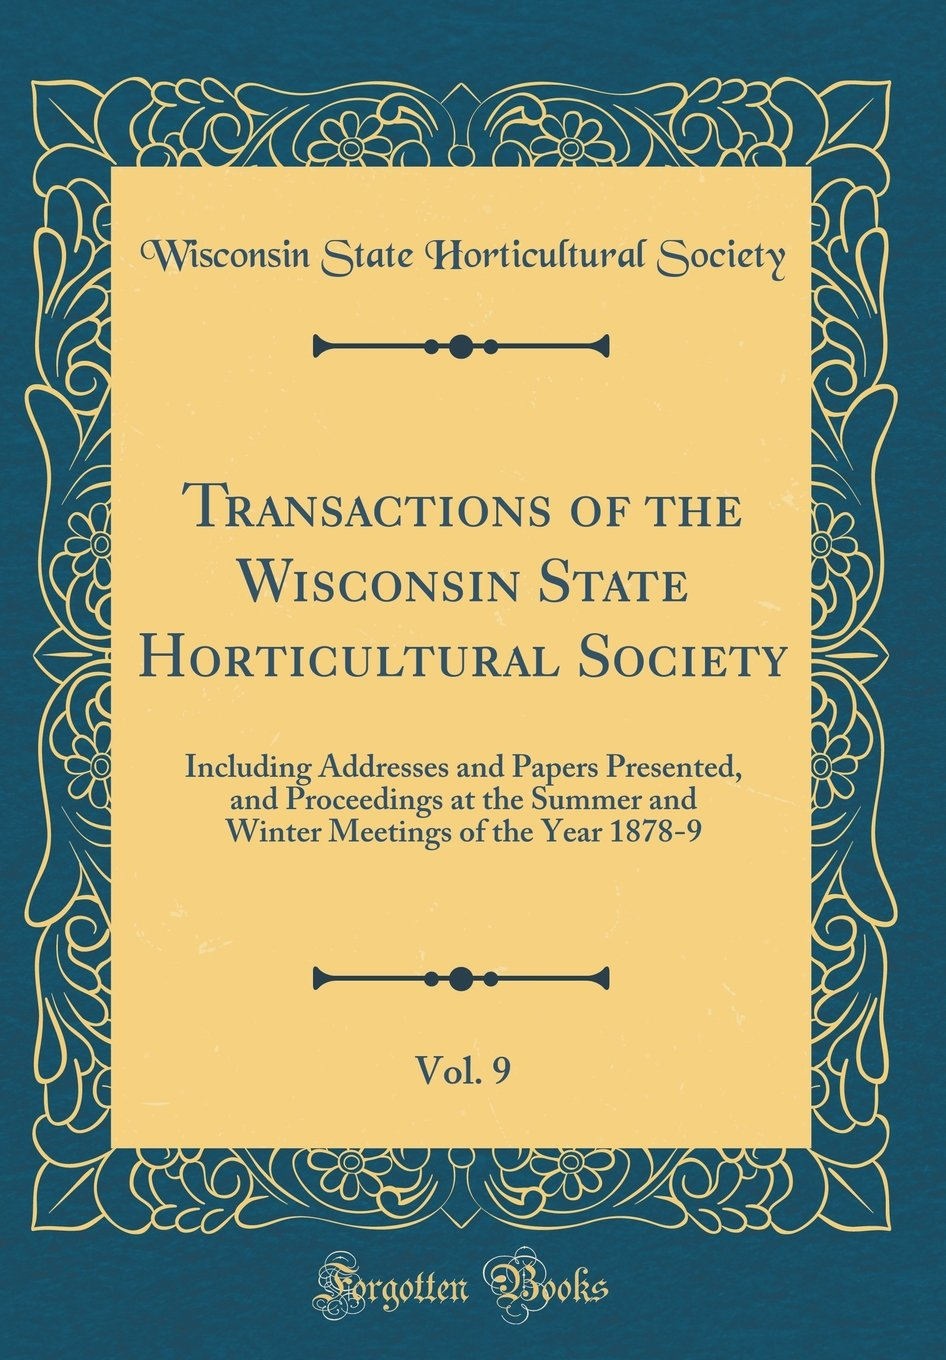 Download Transactions of the Wisconsin State Horticultural Society, Vol. 9: Including Addresses and Papers Presented, and Proceedings at the Summer and Winter Meetings of the Year 1878-9 (Classic Reprint) pdf